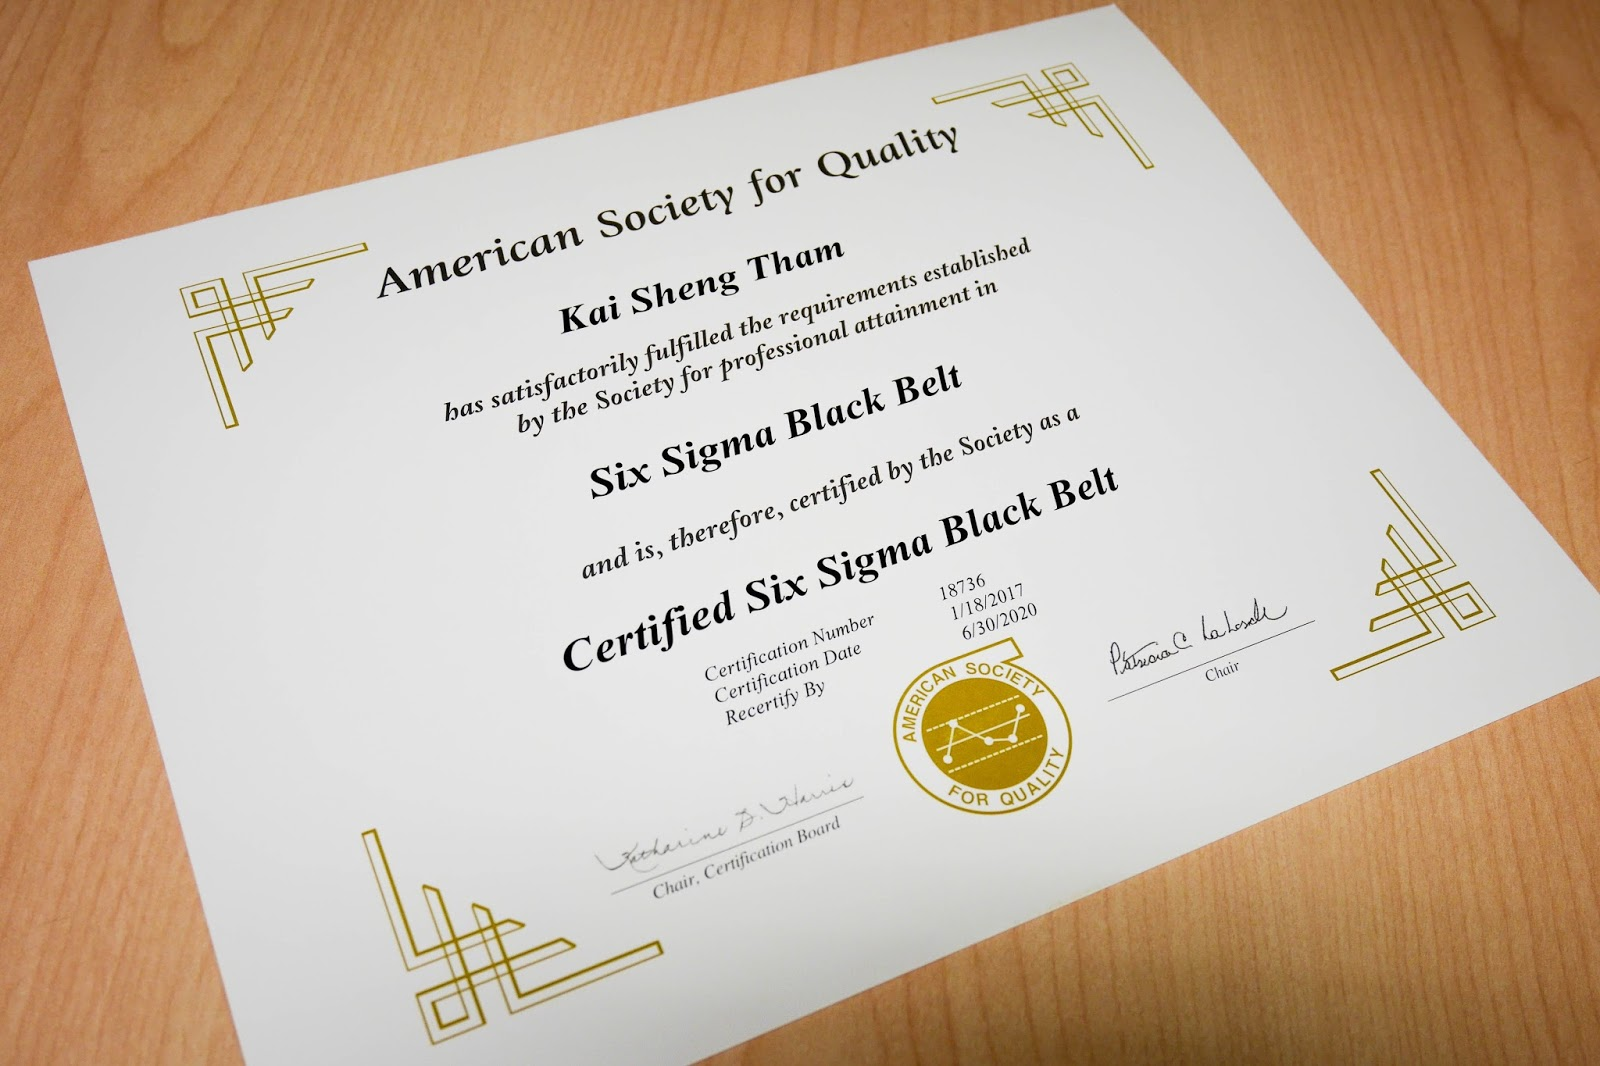 Certified Six Sigma Black Belt Cssbb Javin Tham